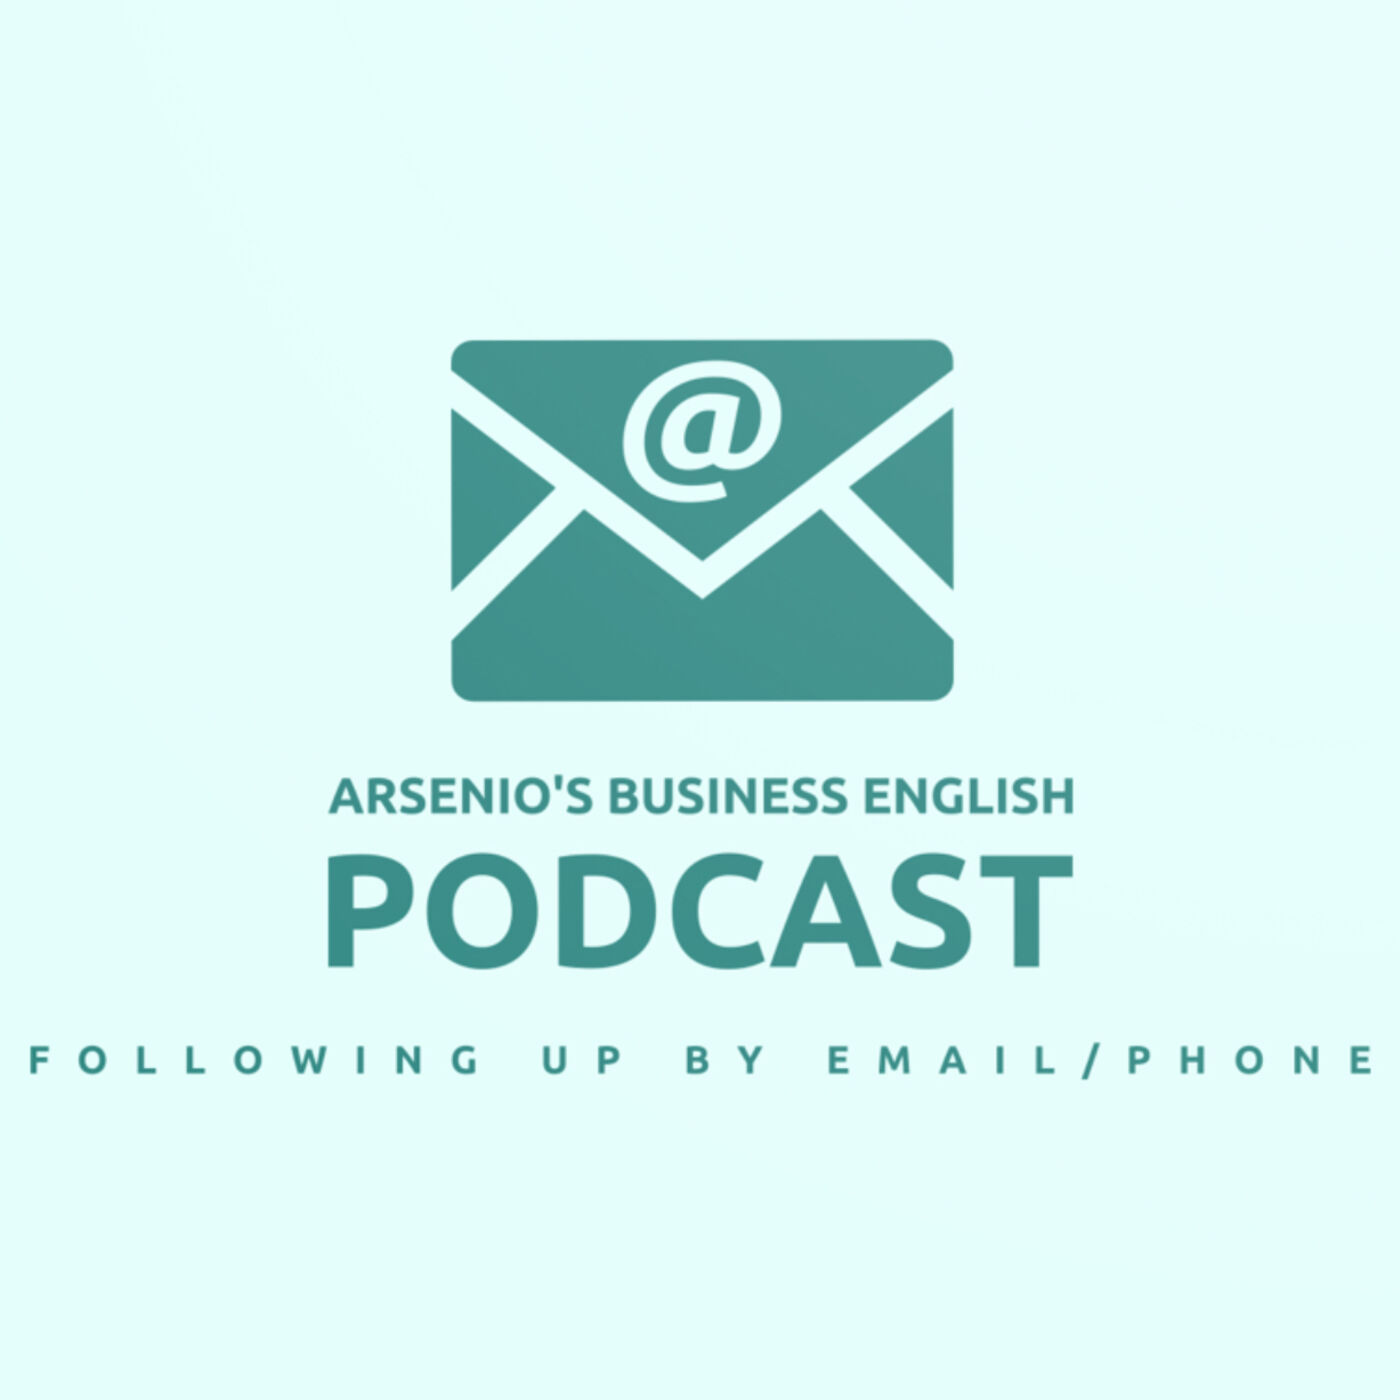 Arsenio's Business English Podcast | Season 6 | Sales | Following Up by Email/Phone